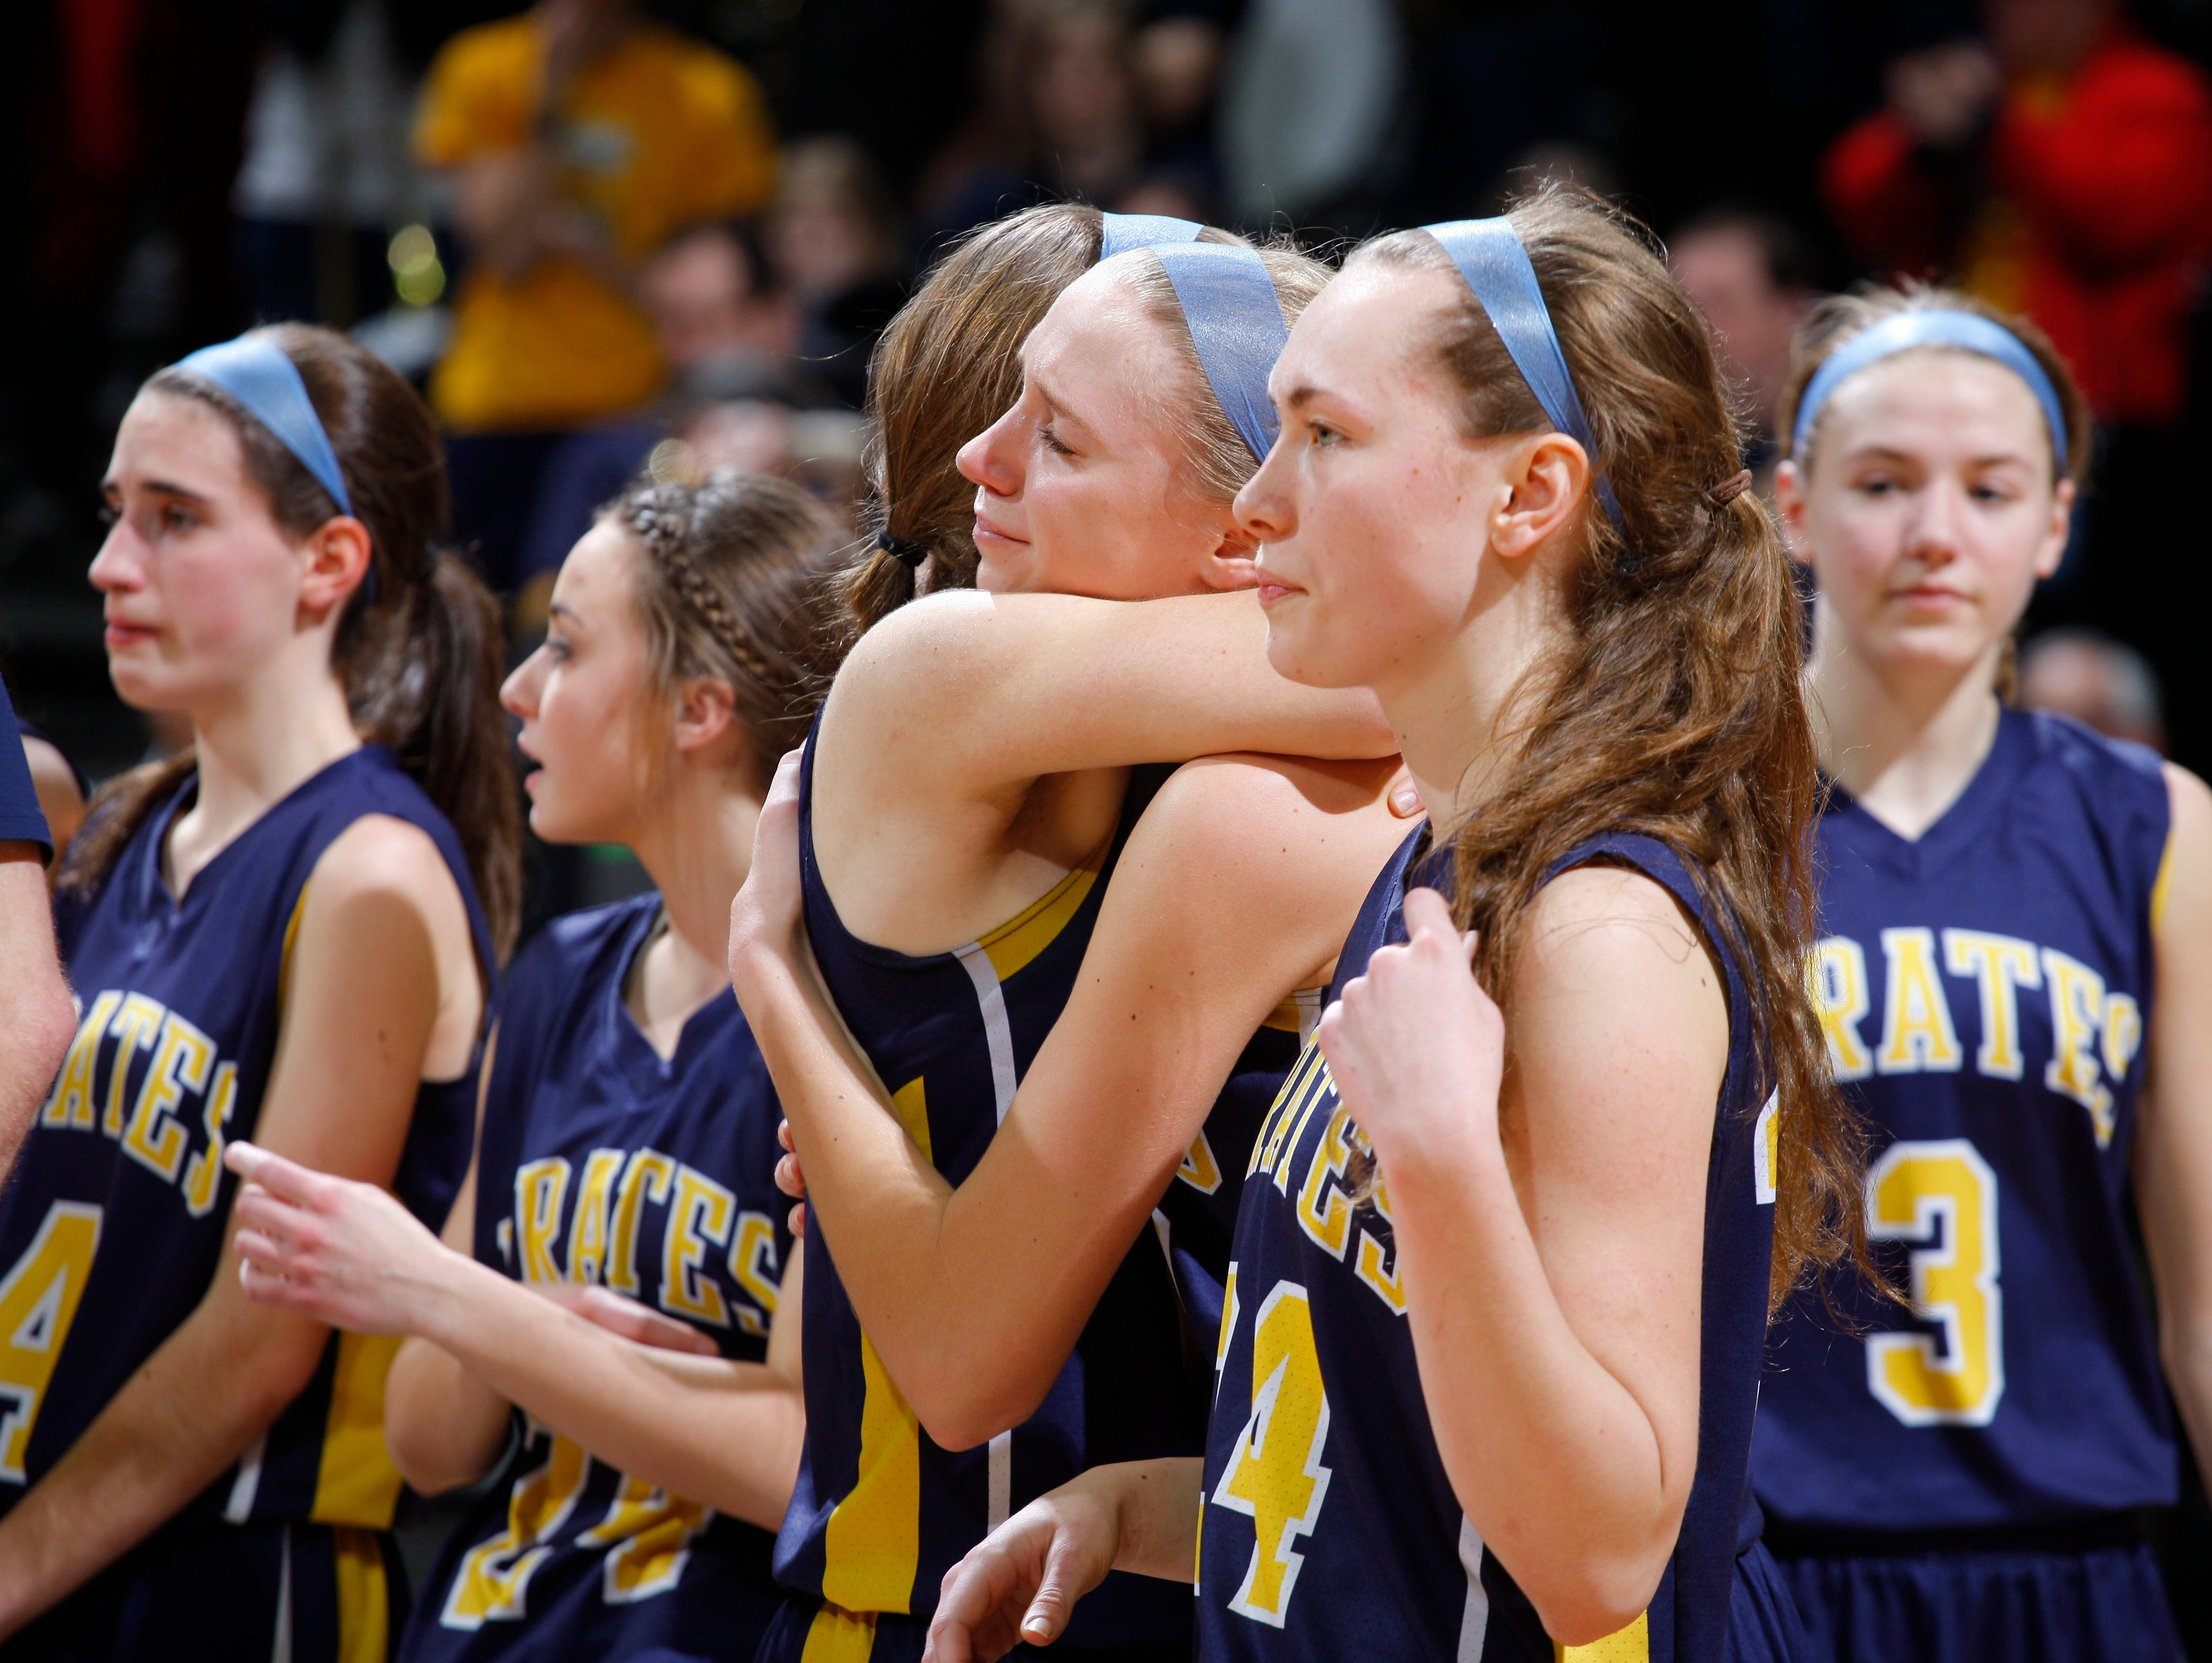 Pewamo-Westphalia's Emily Spitzley, center facing, and Kenzie Hengesbach hug as Rachel Huhn, from left, Olivia Nurenberg, Kate Hengesbach and Hannah Spitzley (3) react following their 46-44 loss to Detroit Edison their MHSAA Class C championship game, Saturday, March 18, 2017, in East Lansing, Mich.